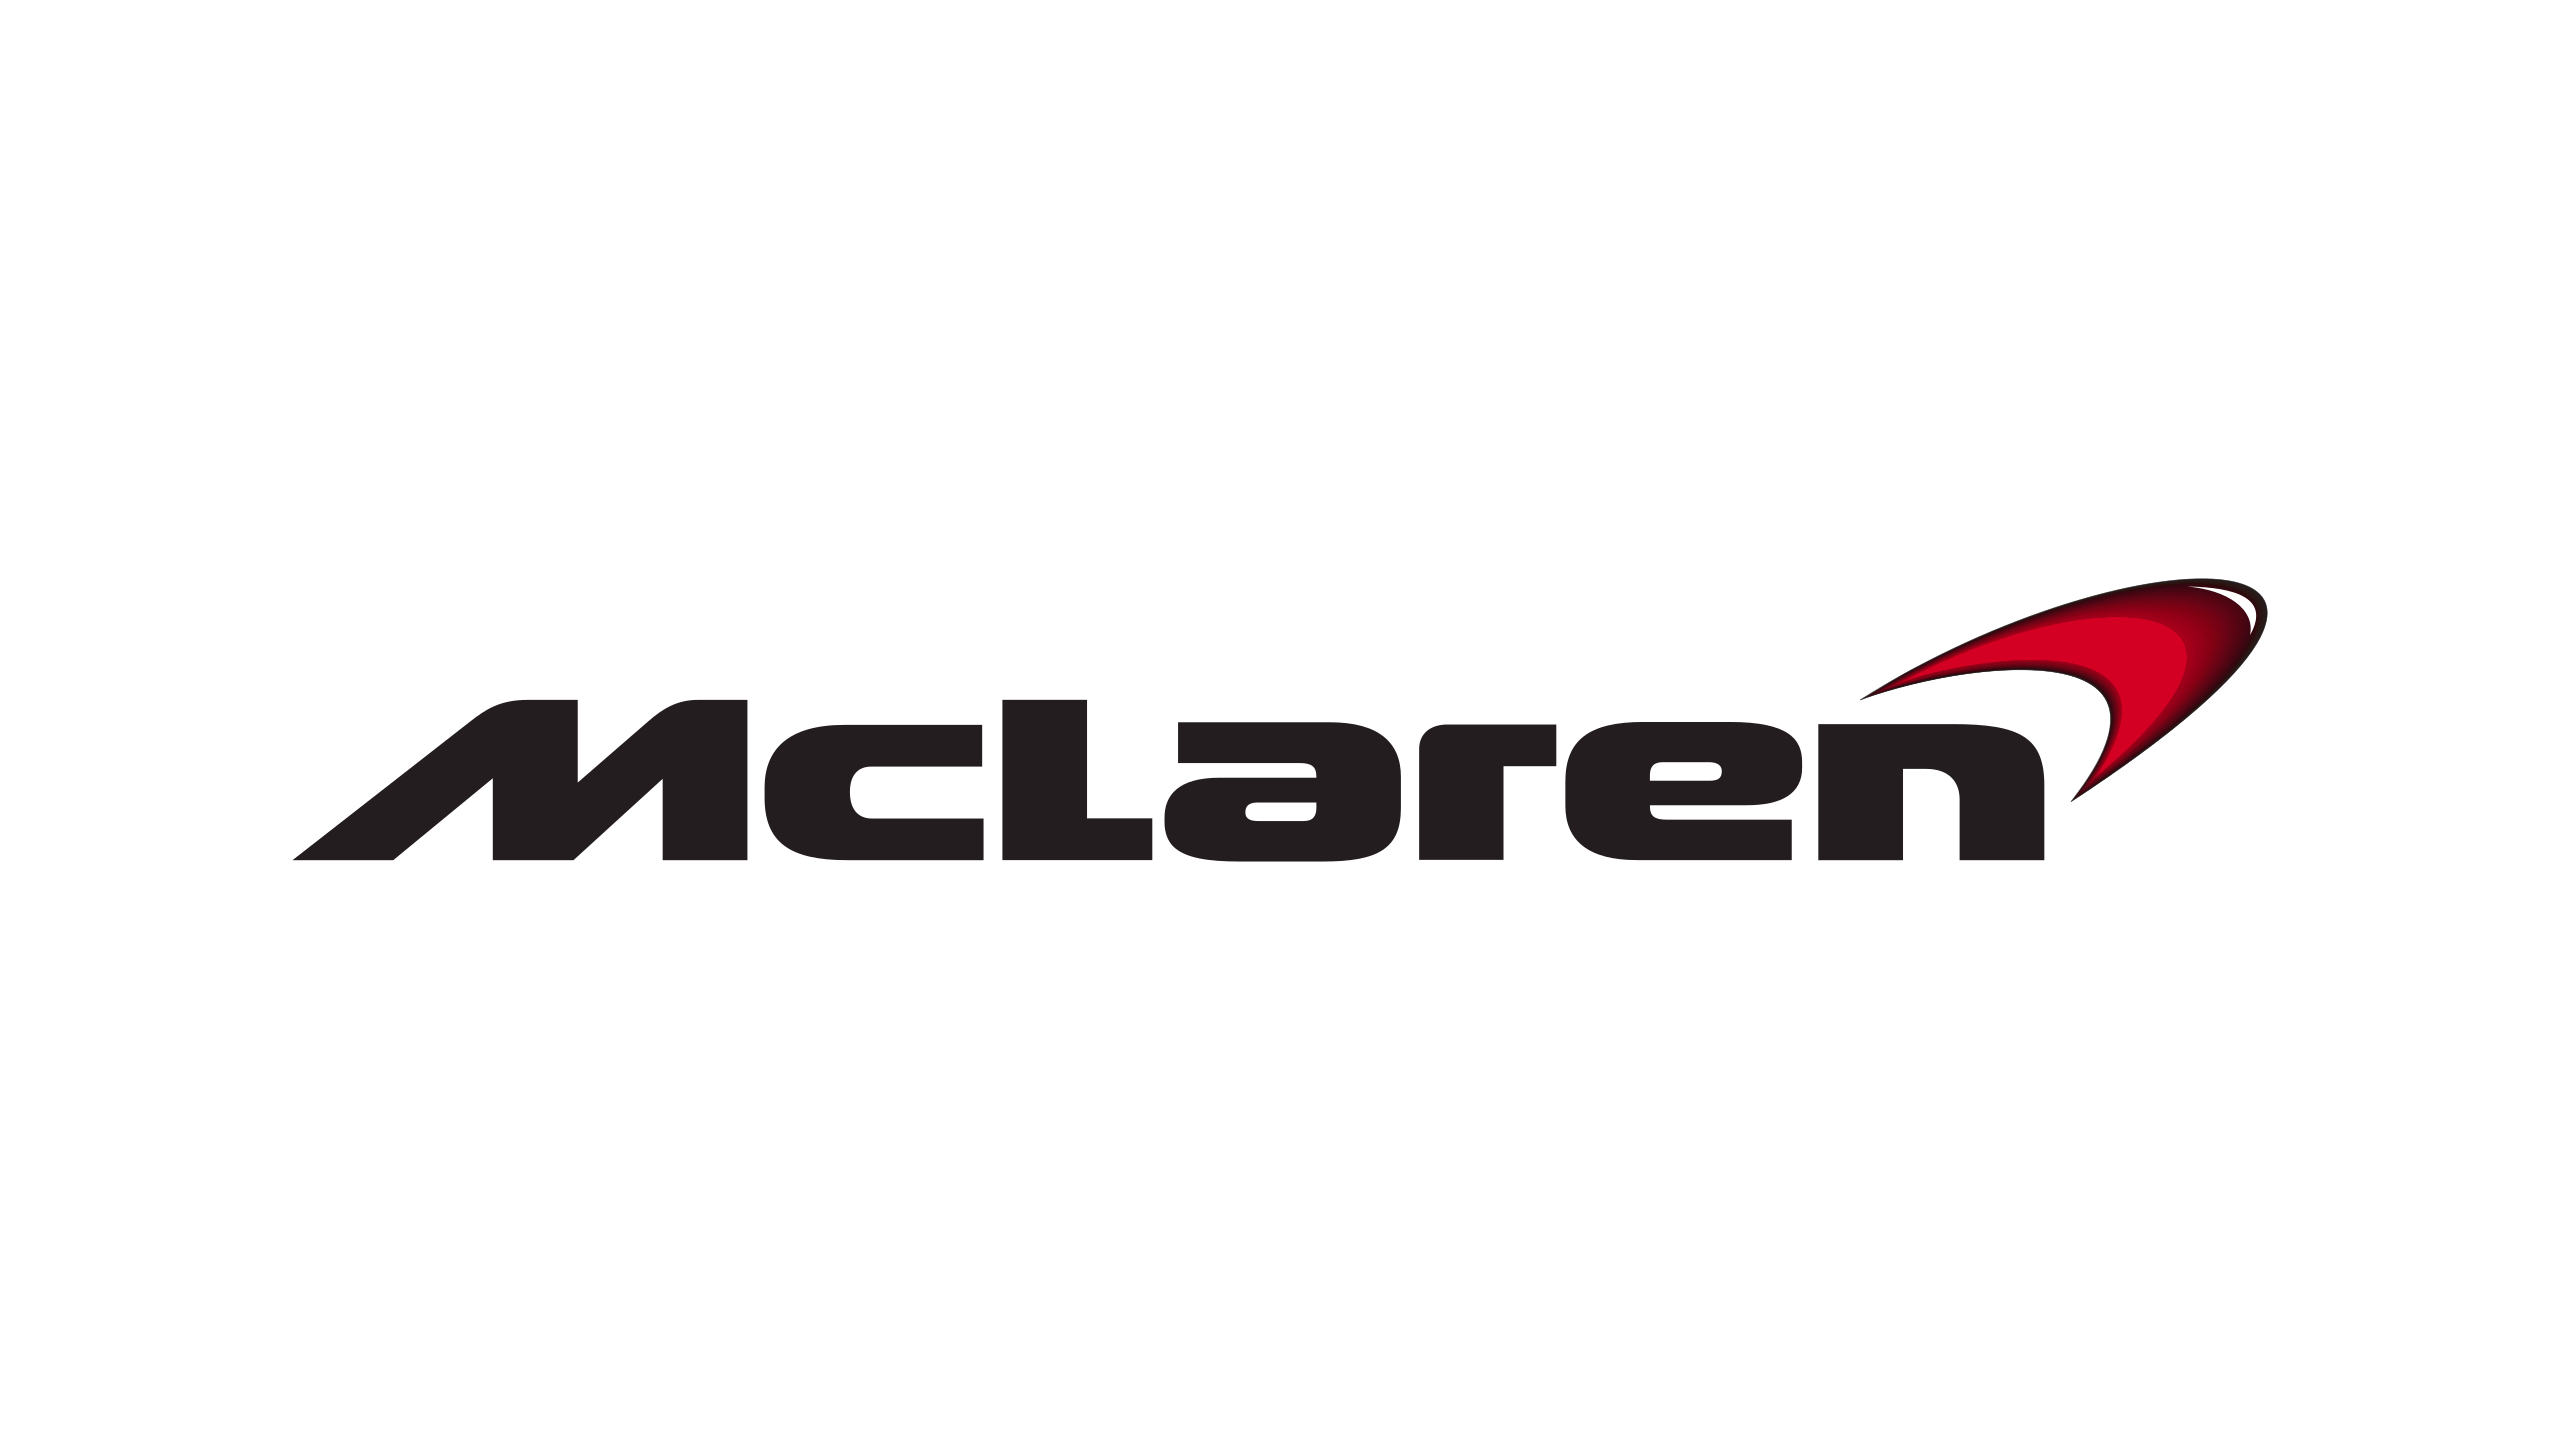 Mclaren Logo Free Download Transparent 12461